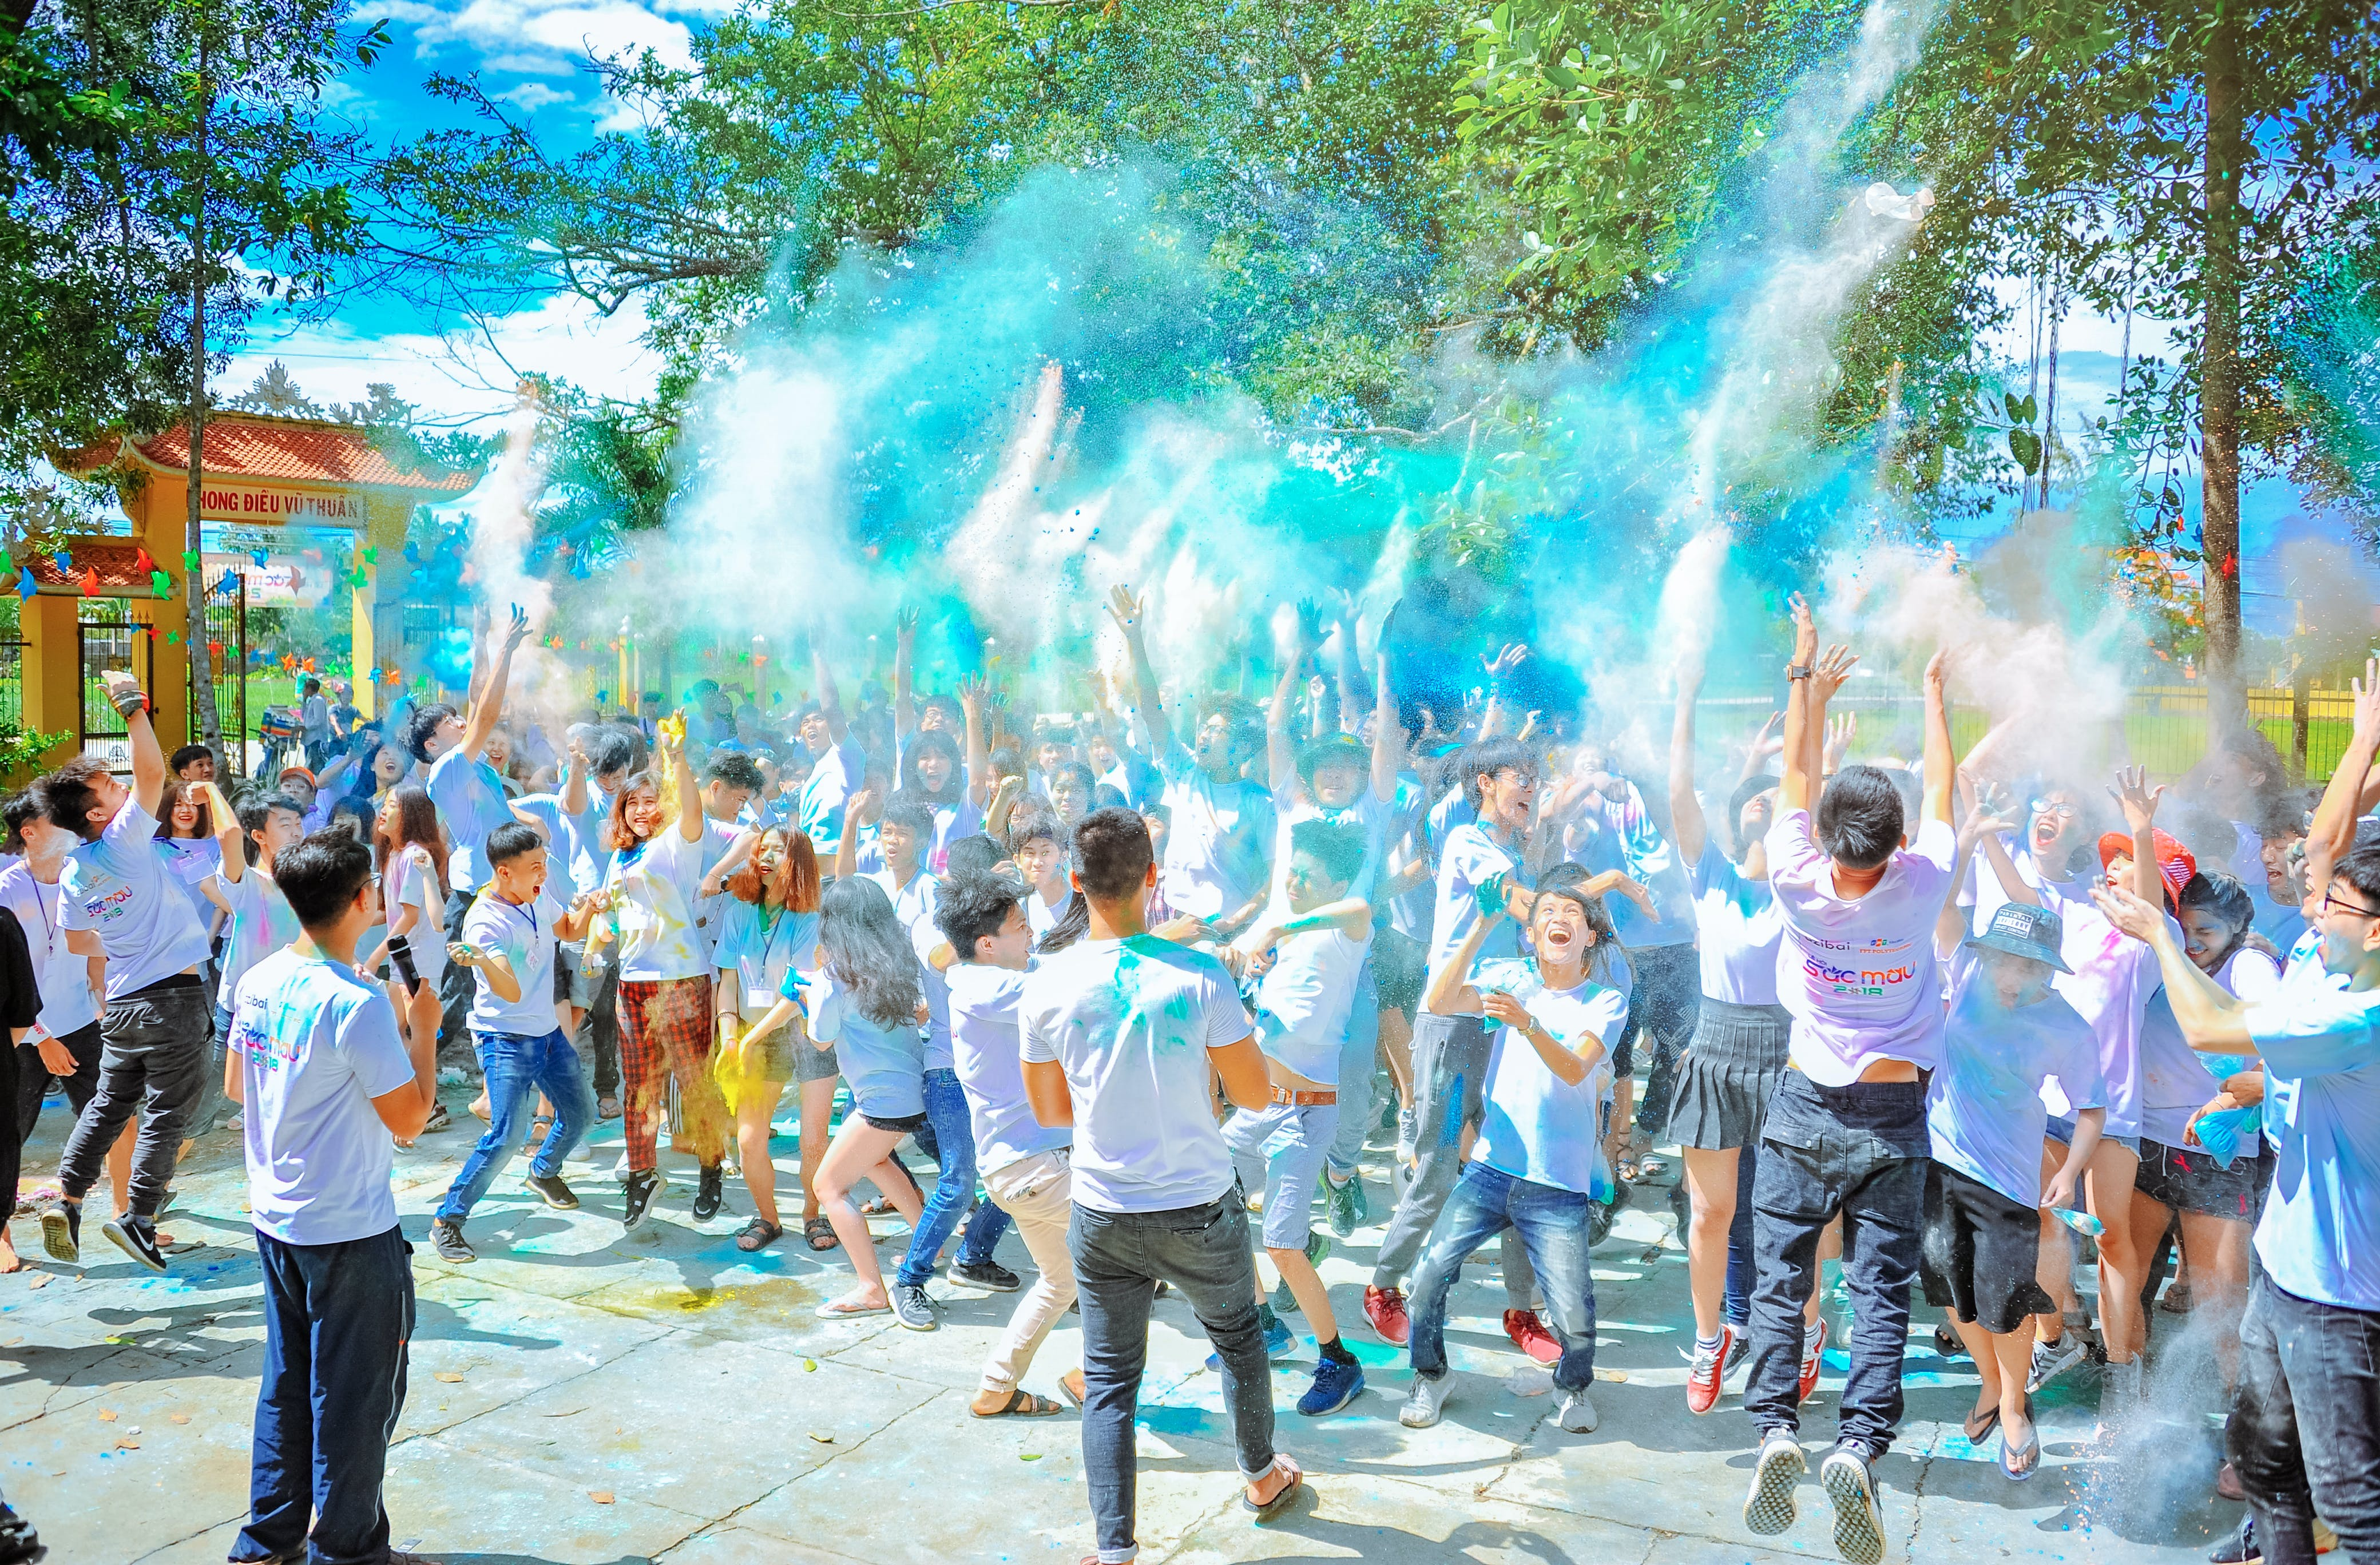 People Throwing Blue Powder at Daytime